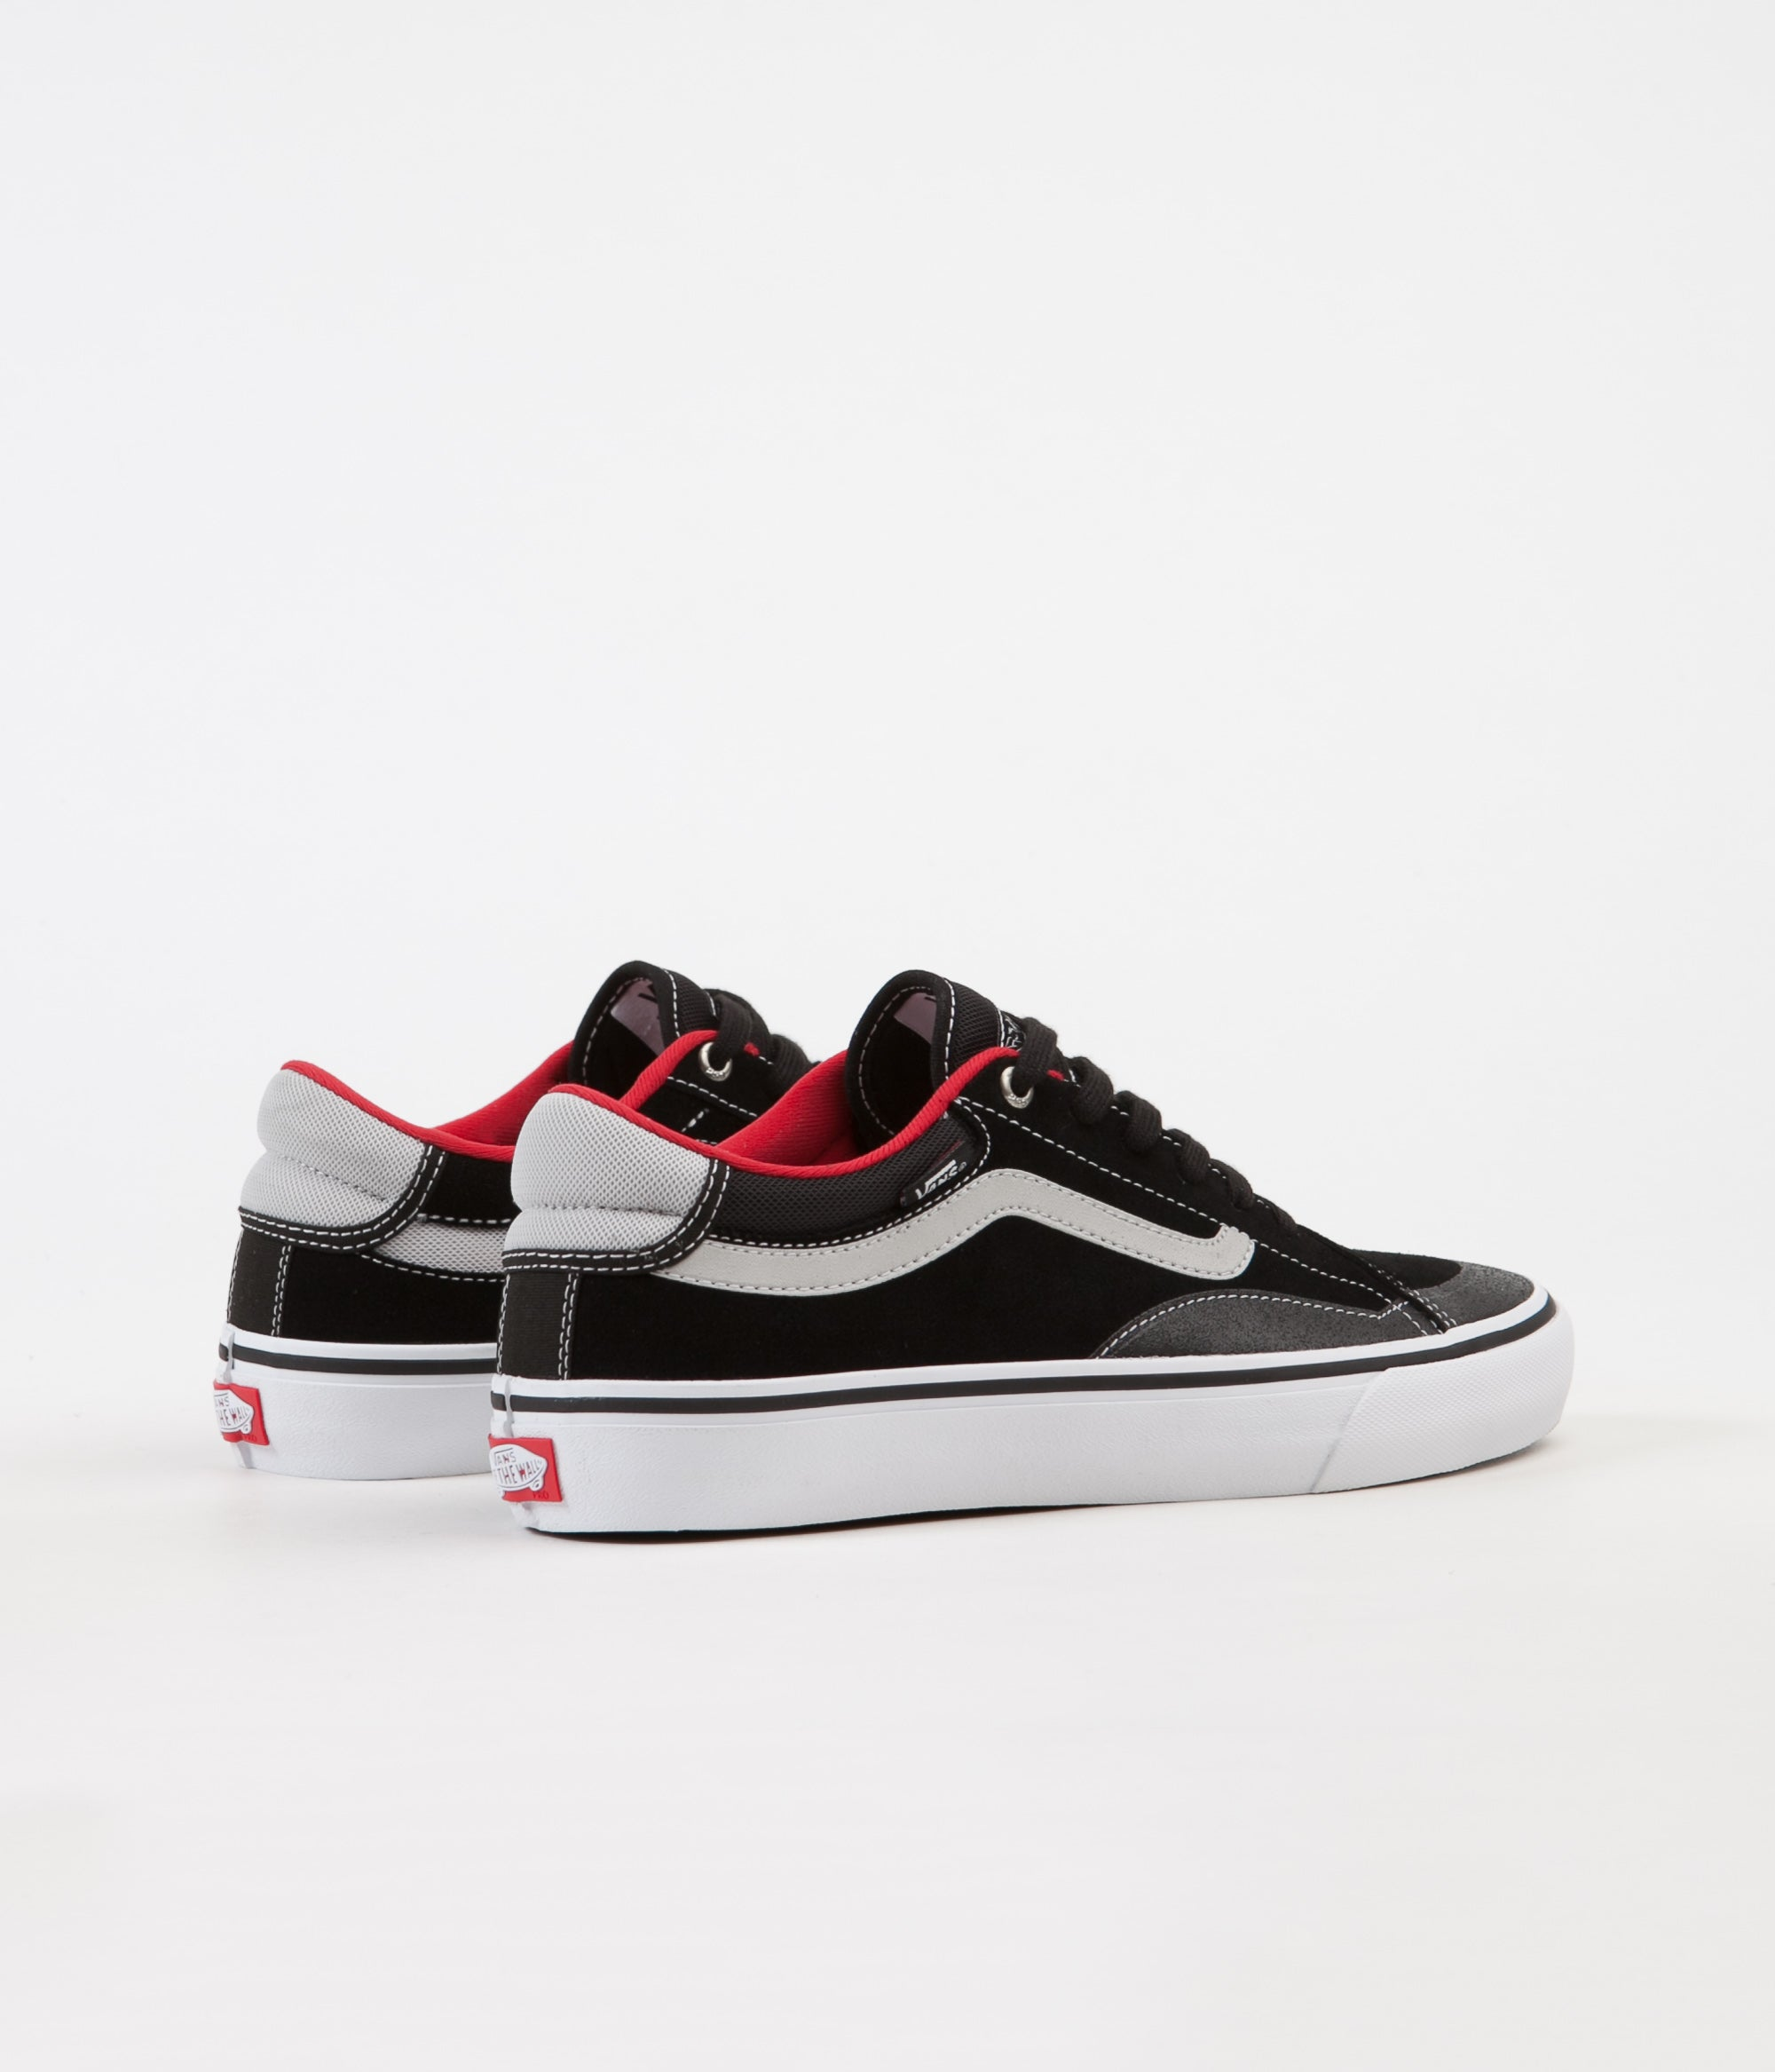 Vans TNT Advanced Prototype Shoes - Black / White / Red